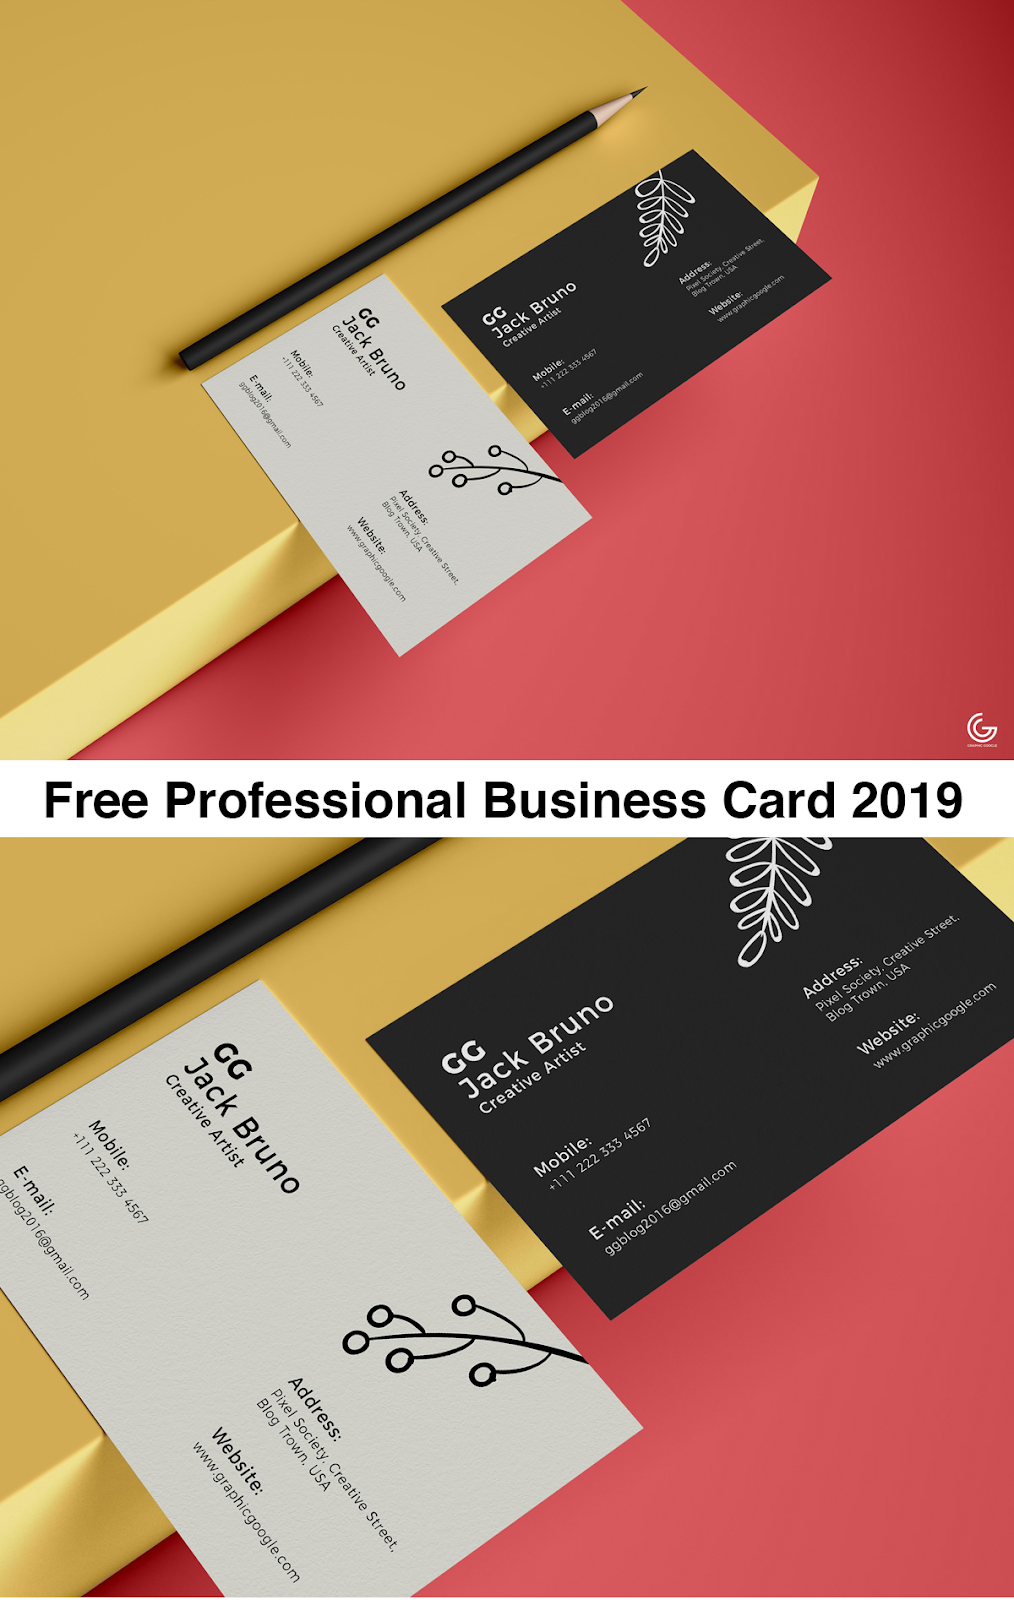 Free Brand Business Card Mockup PSD 2019, free business card mockup 2019